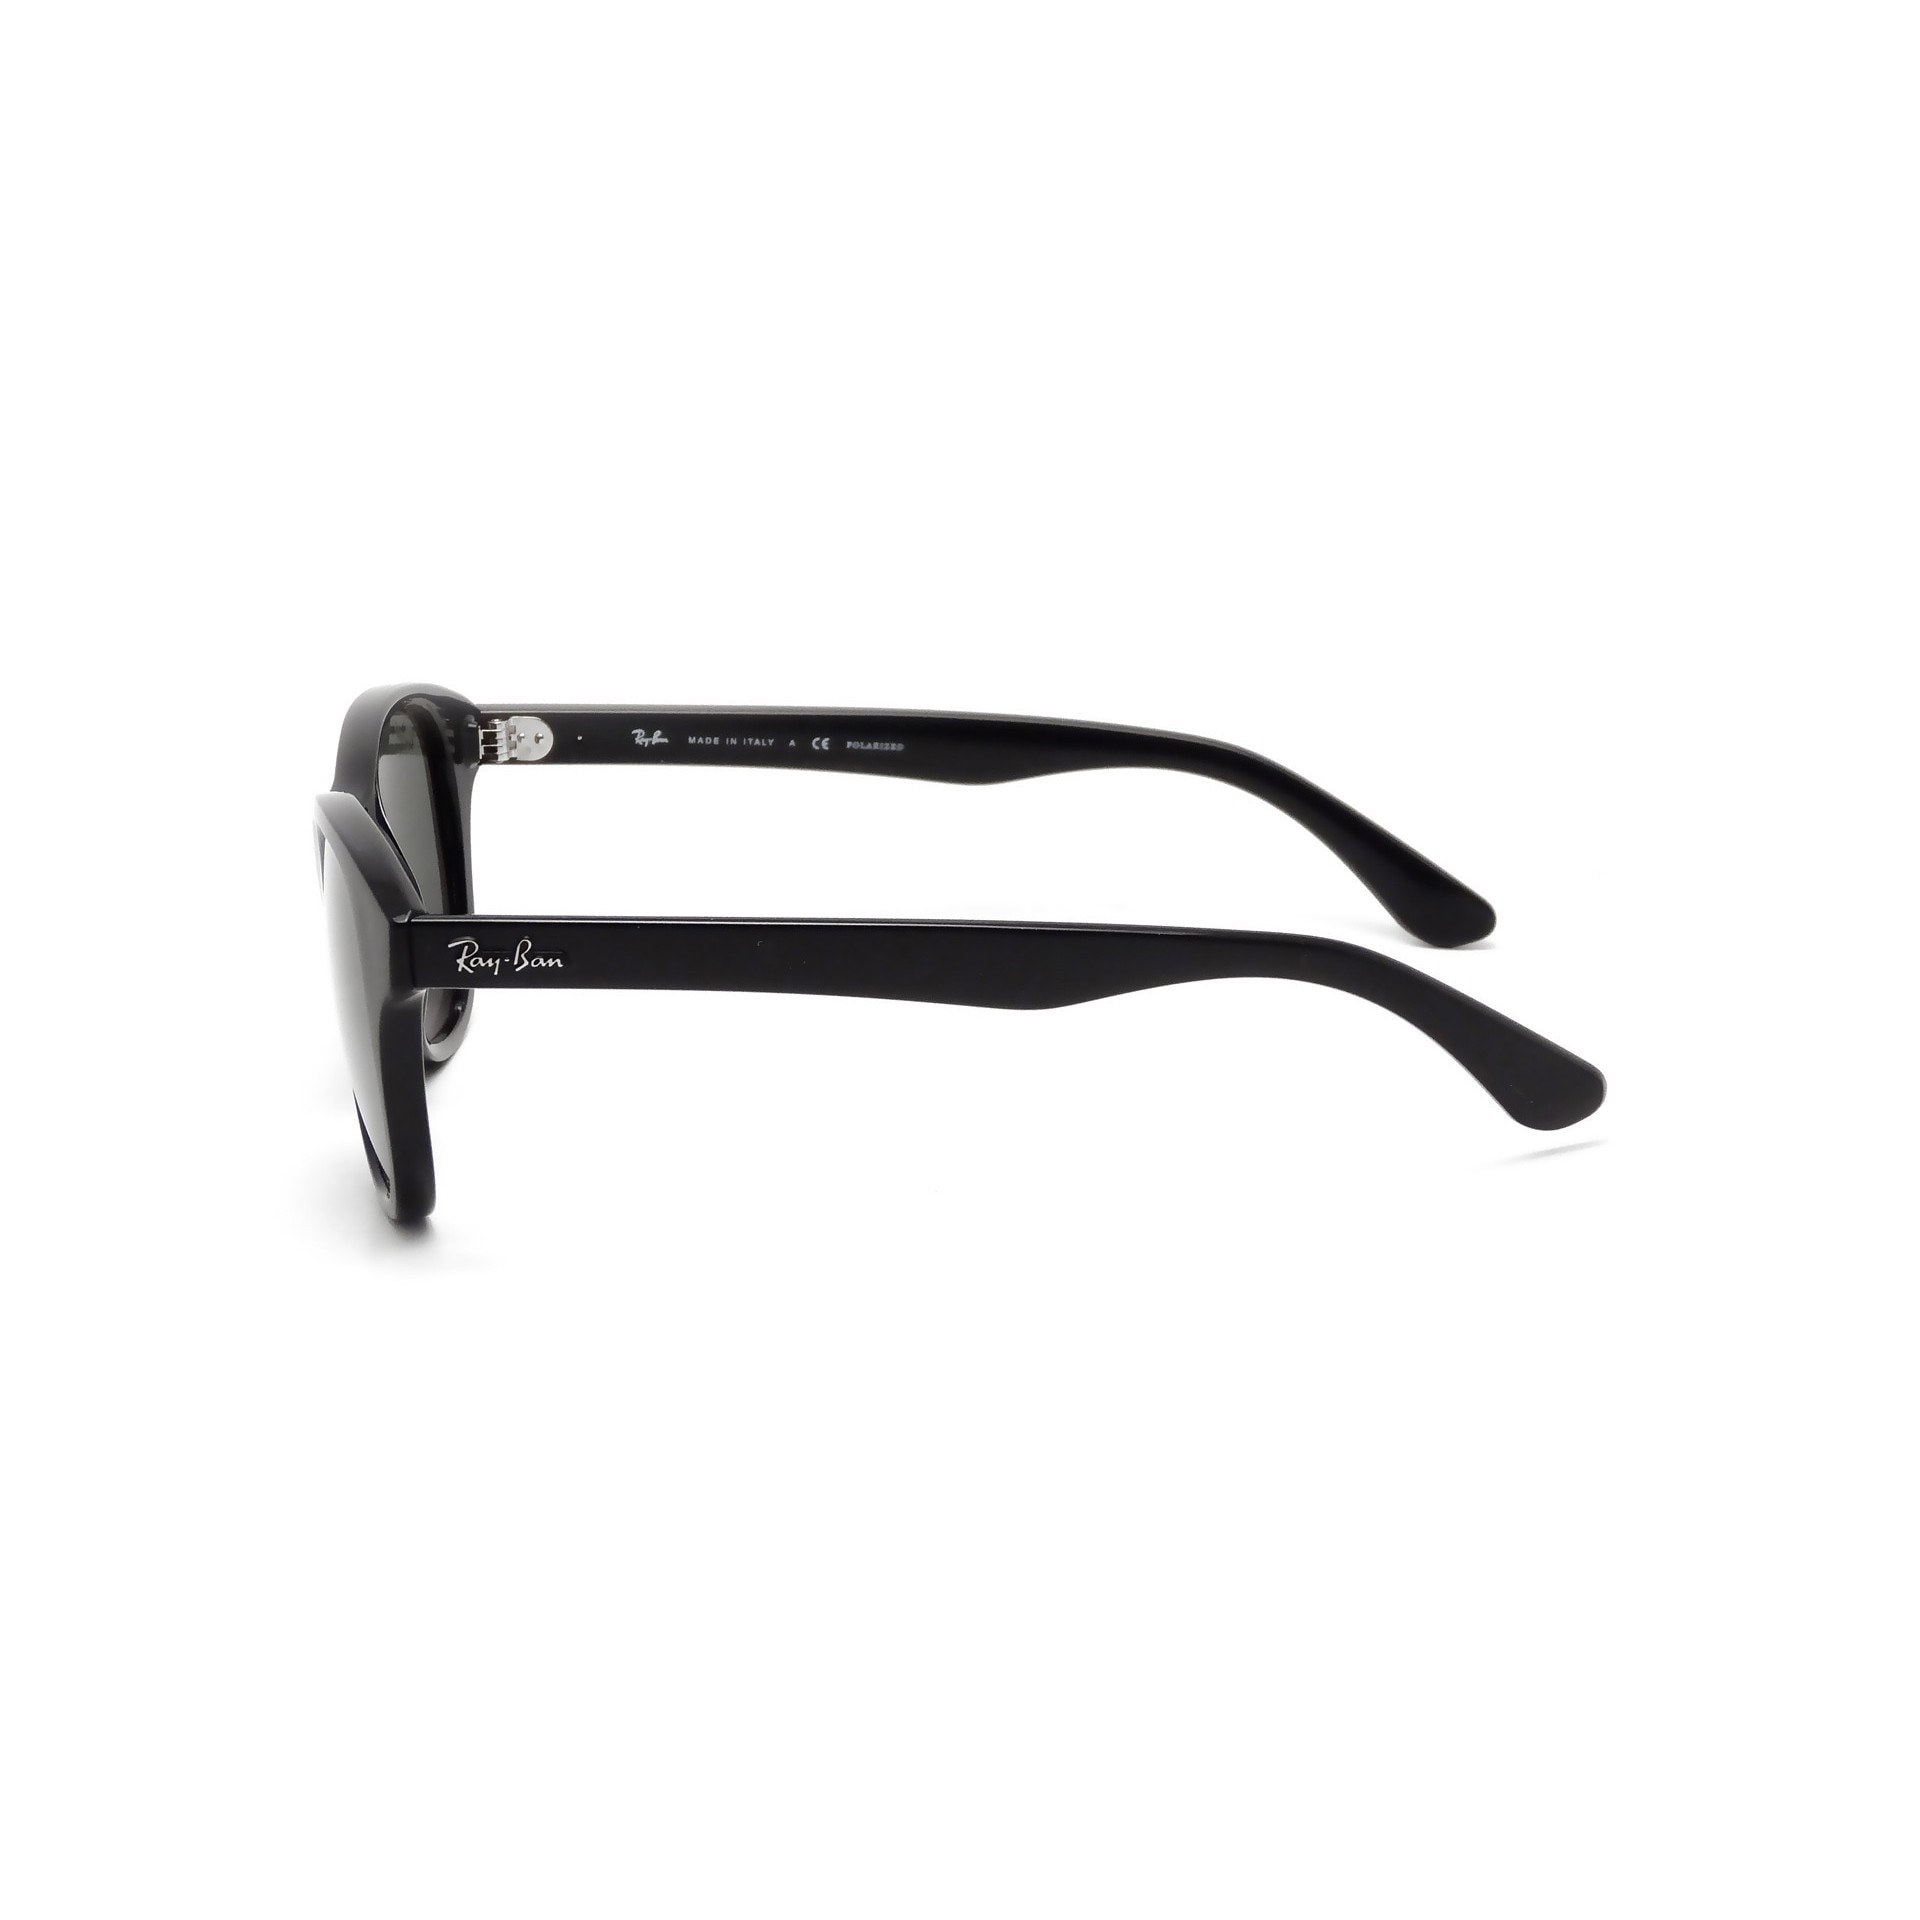 ddf821255eb Shop Ray-Ban RB4203 601 58 Black Frame Polarized Green 51mm Lens Sunglasses  - Free Shipping Today - Overstock - 11879105